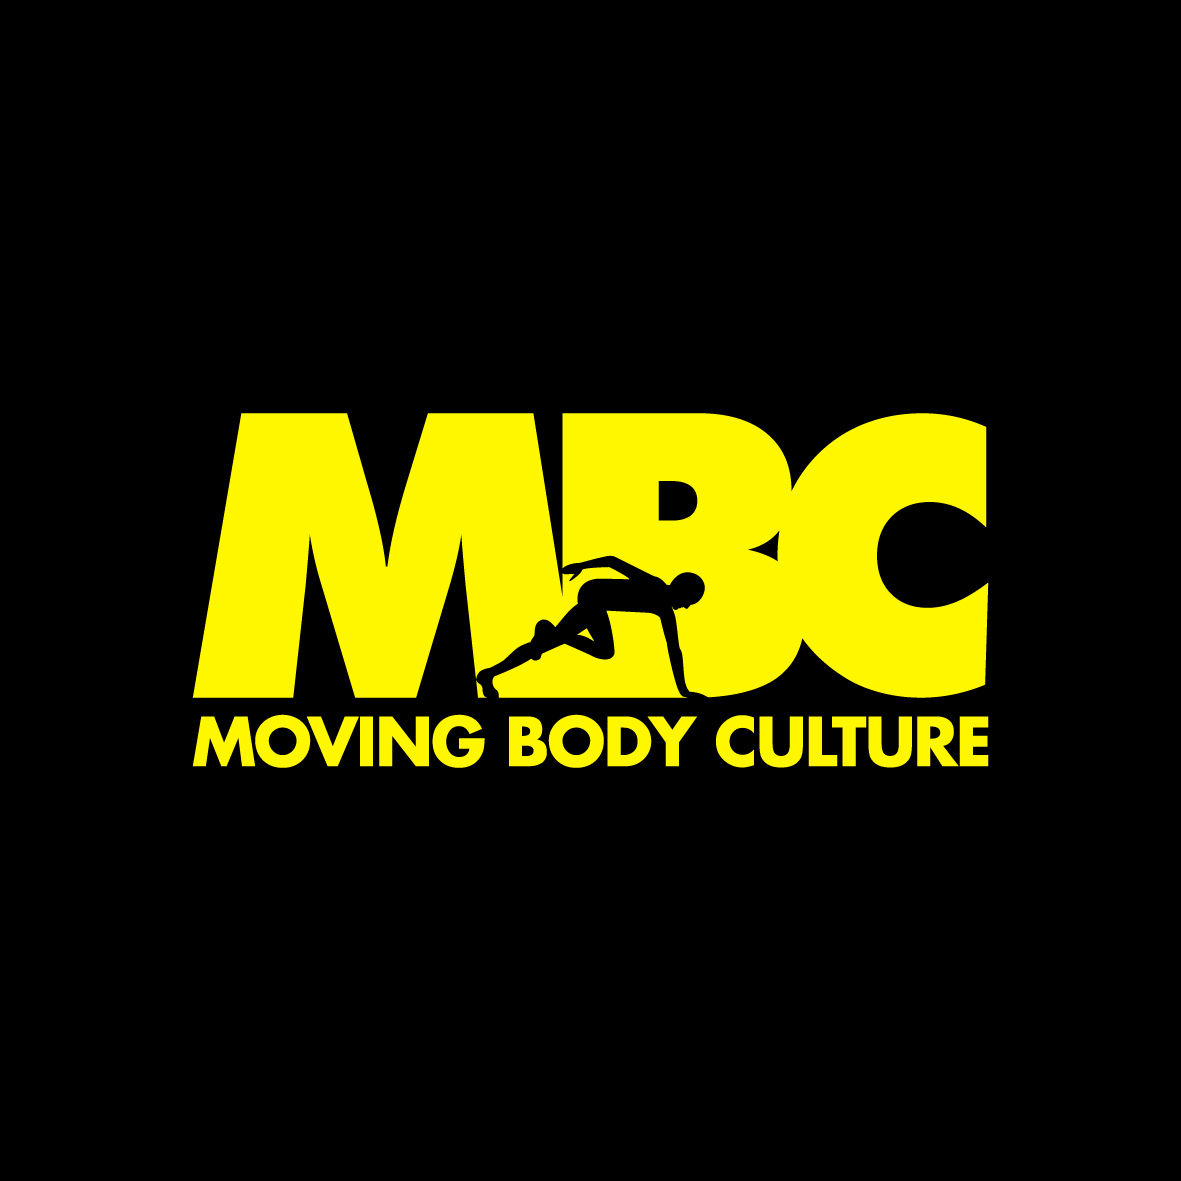 MOVING BODY CULTURE